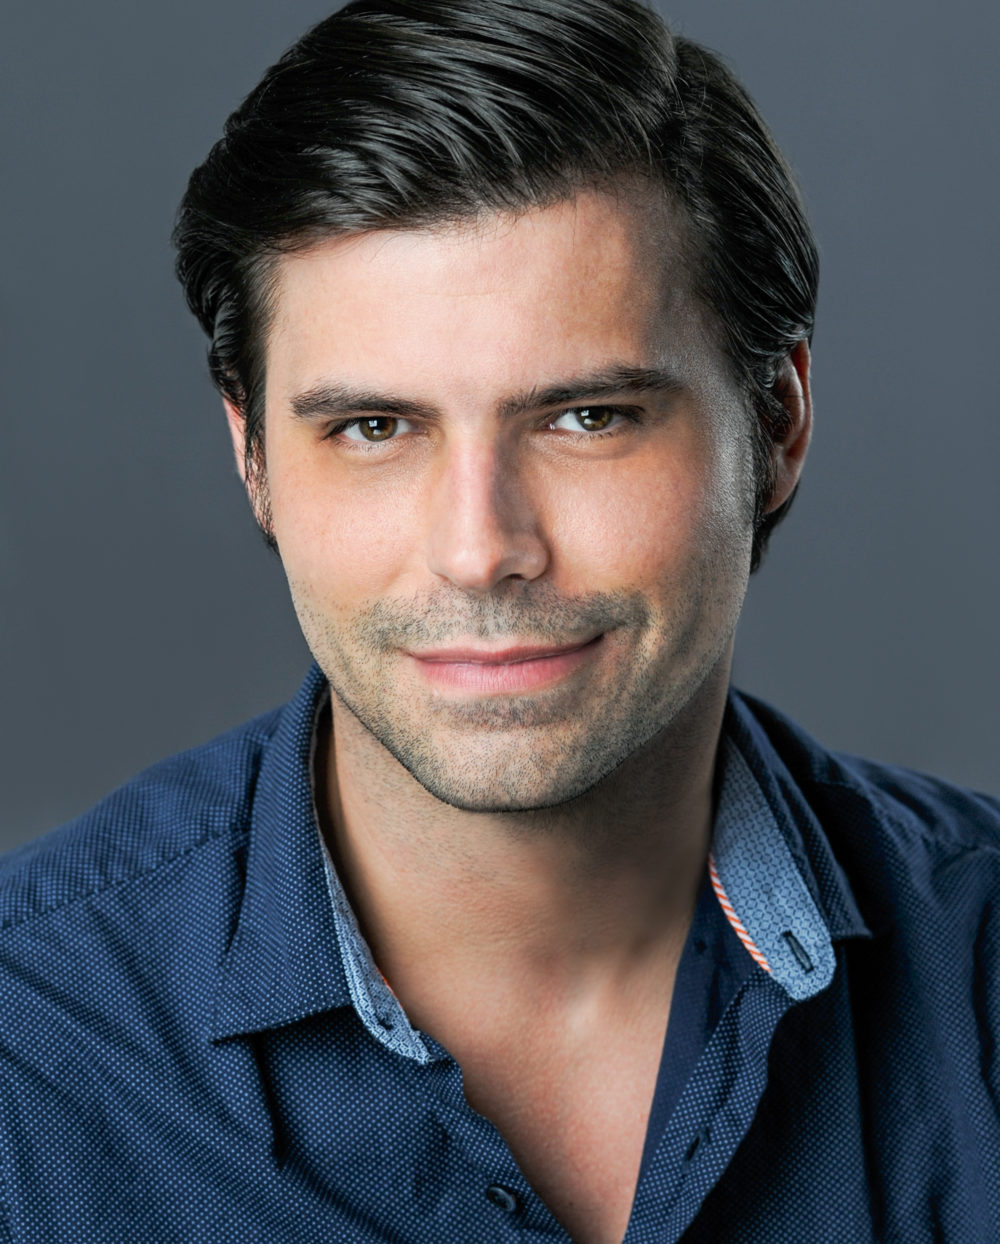 A headshot of James David West